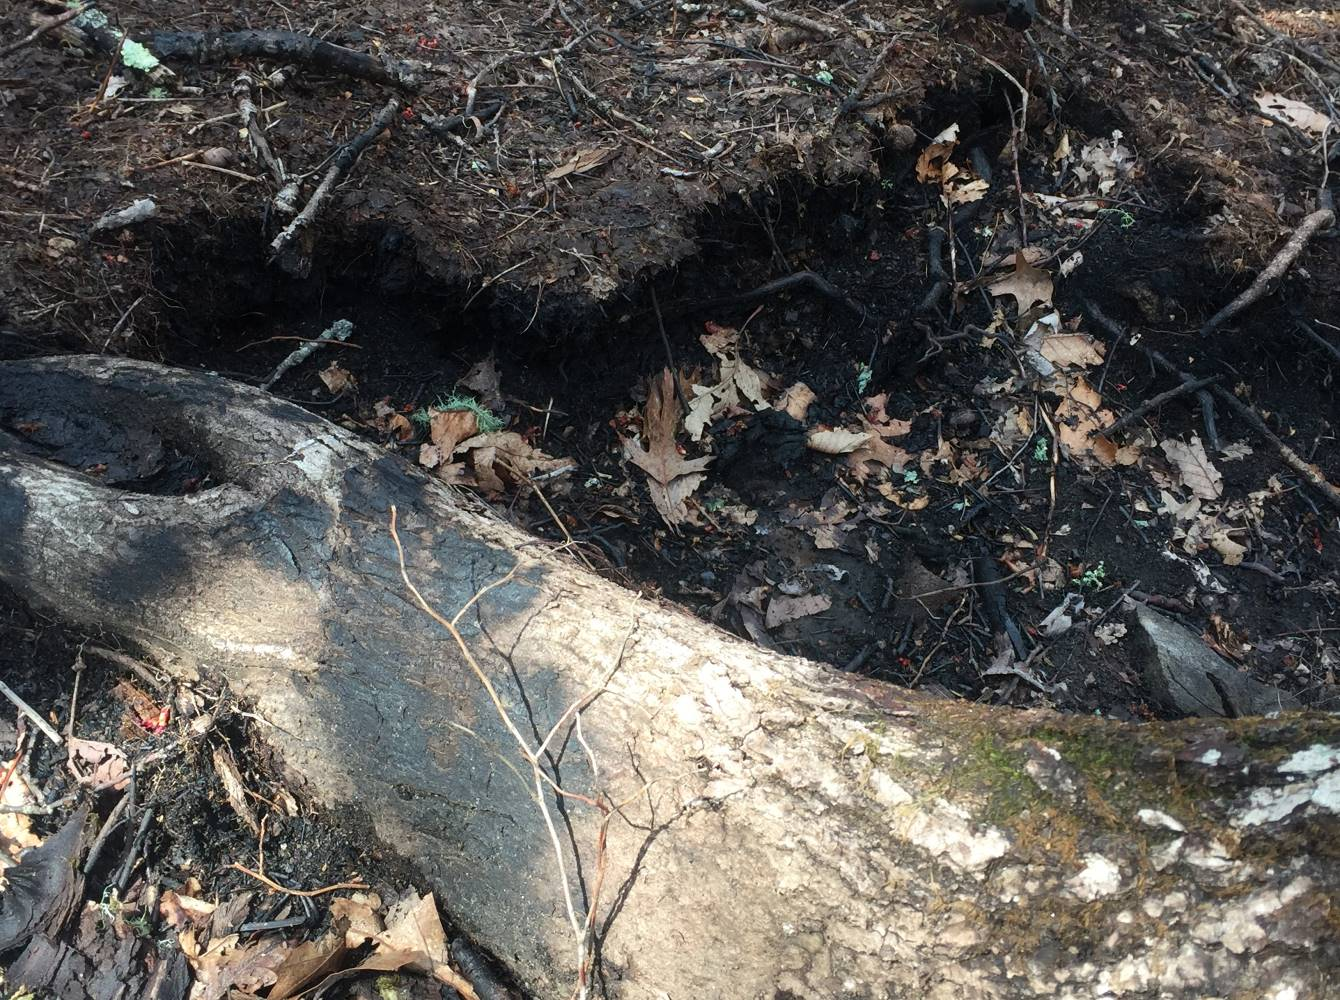 Figure 2 A Deep Hole Burned by the Rock Mountain Fire in the Organic 'Duff' Layer